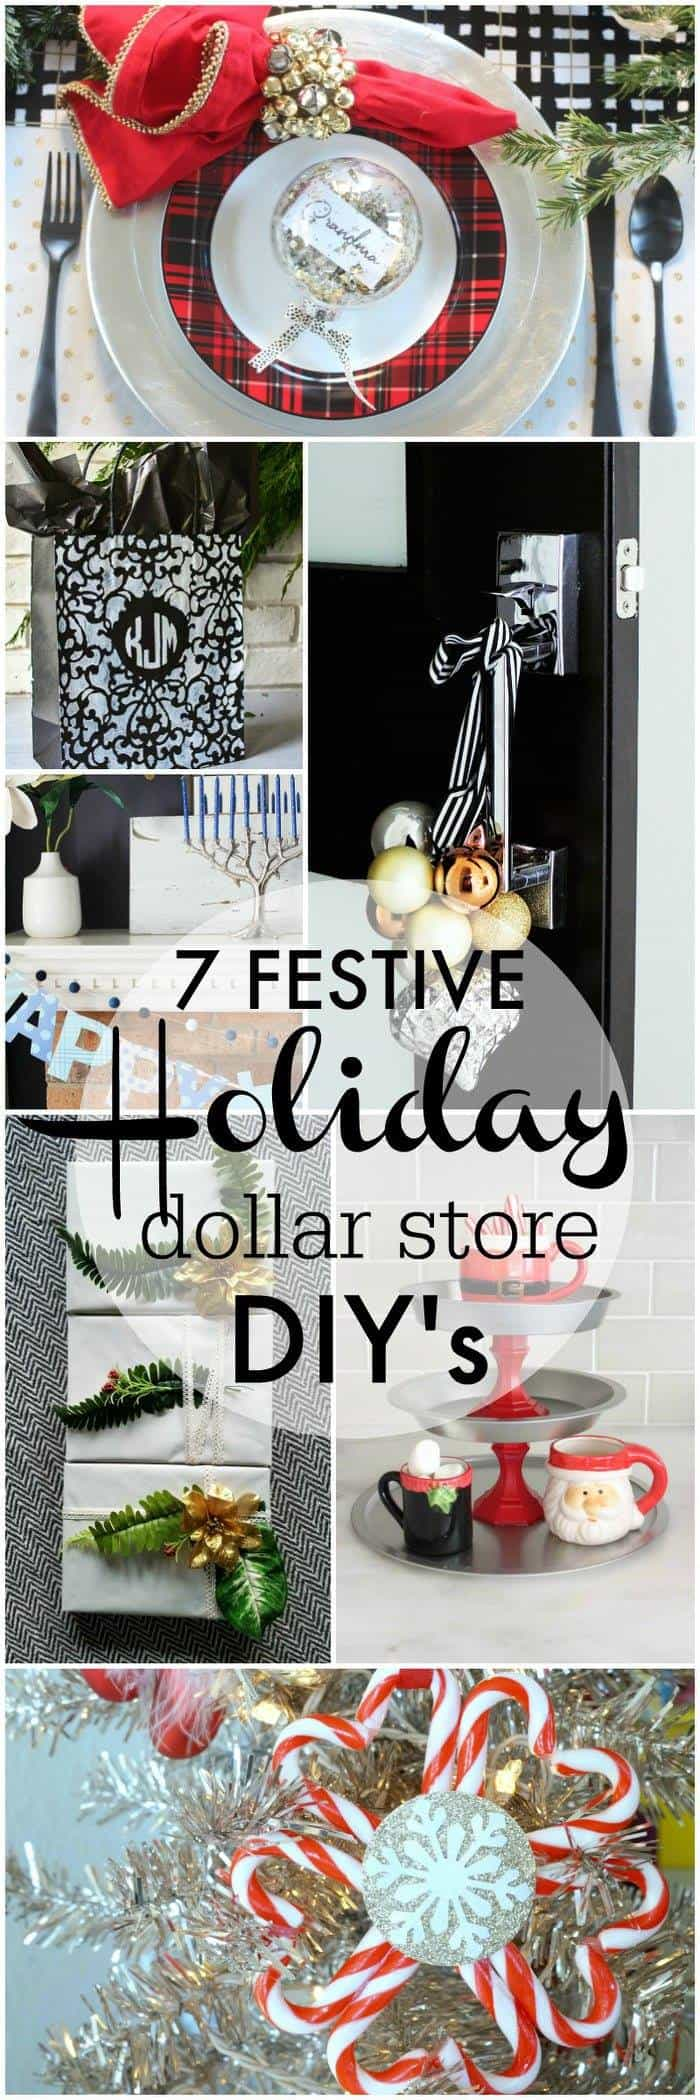 7 festive holiday Dollar Store DIY Projects